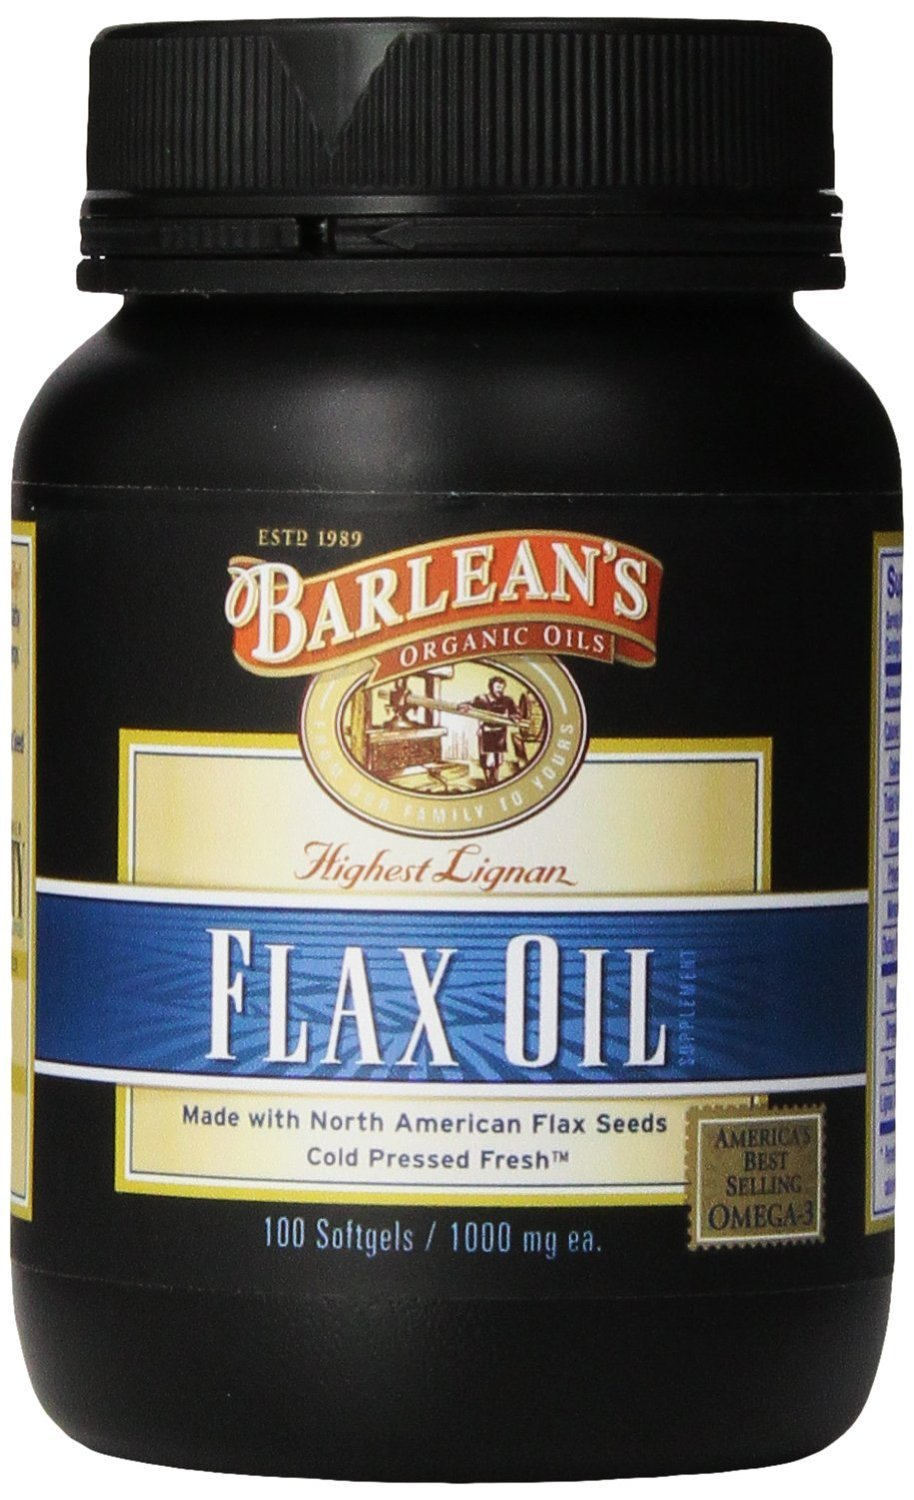 3 PACK: Lignan Flax Oil - Softgels - 100 ct.